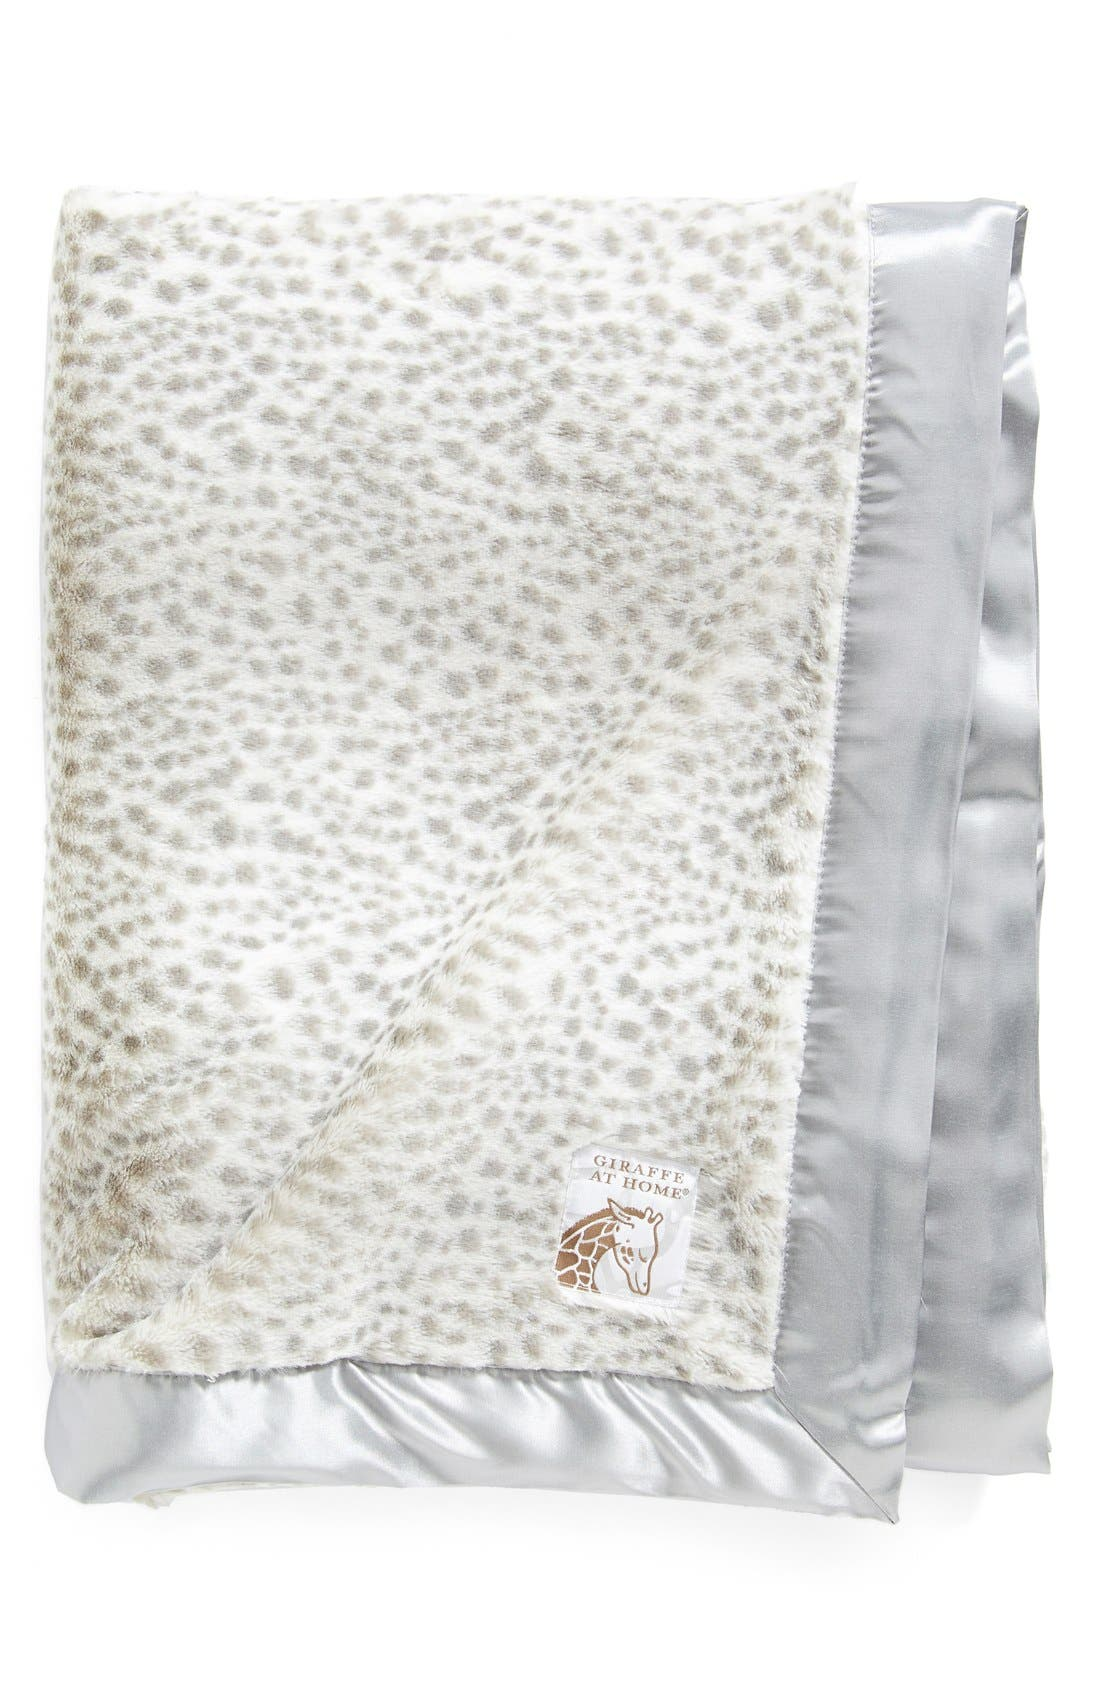 Main Image - Giraffe at Home 'Luxe Snow Leopard' Faux Fur Throw